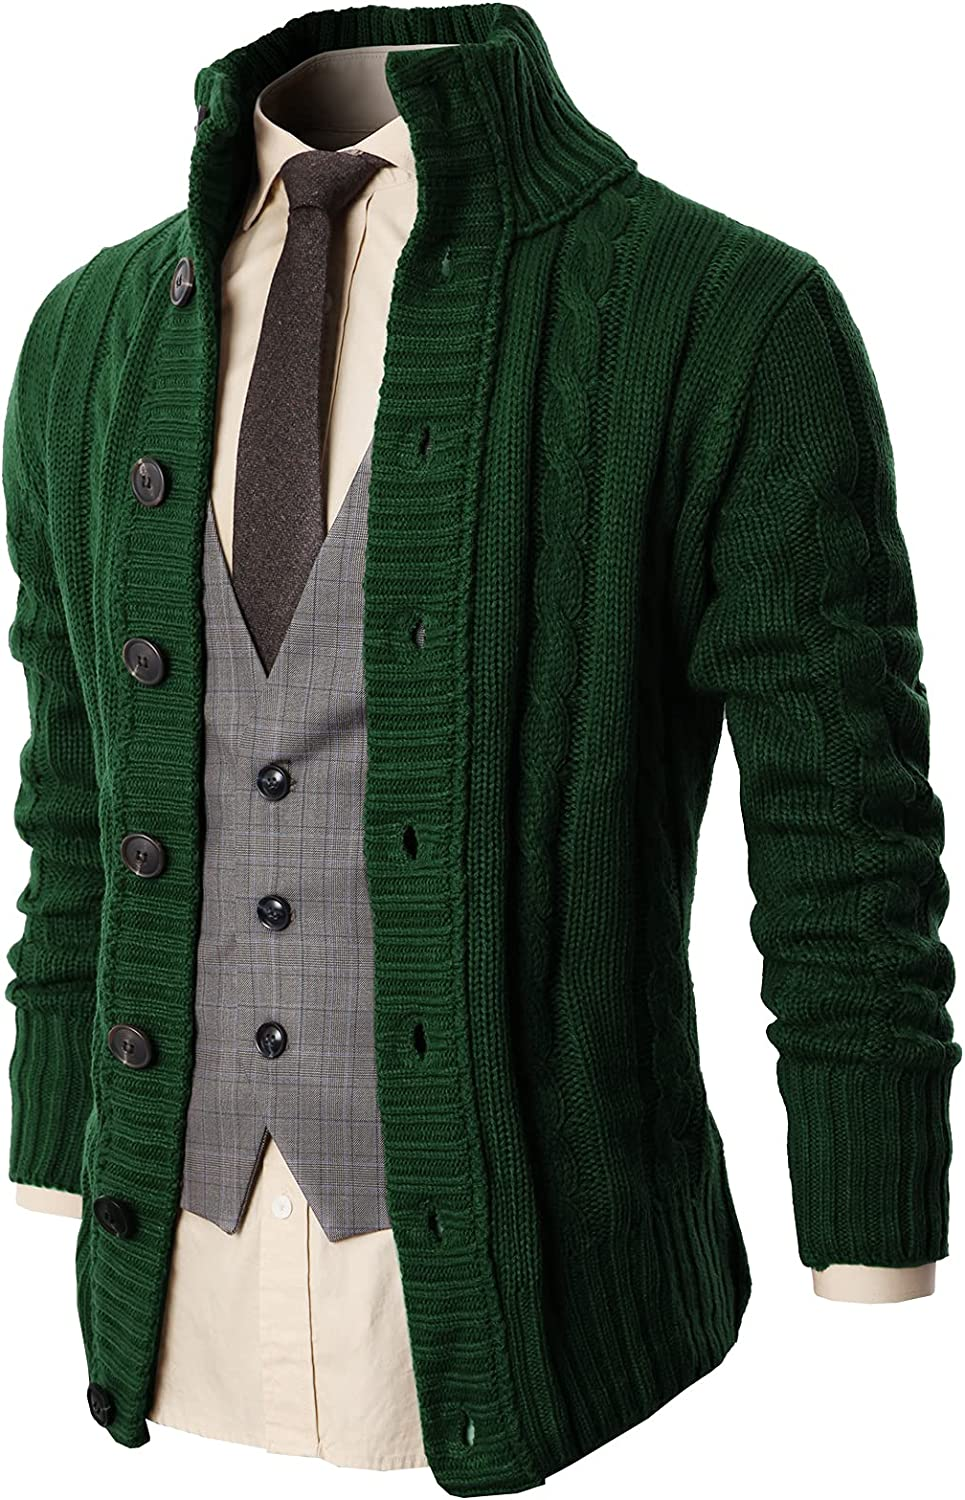 H2H Mens Casual Slim Fit Cardigan Cable Knitted Sweater Thermal Button Down Closure